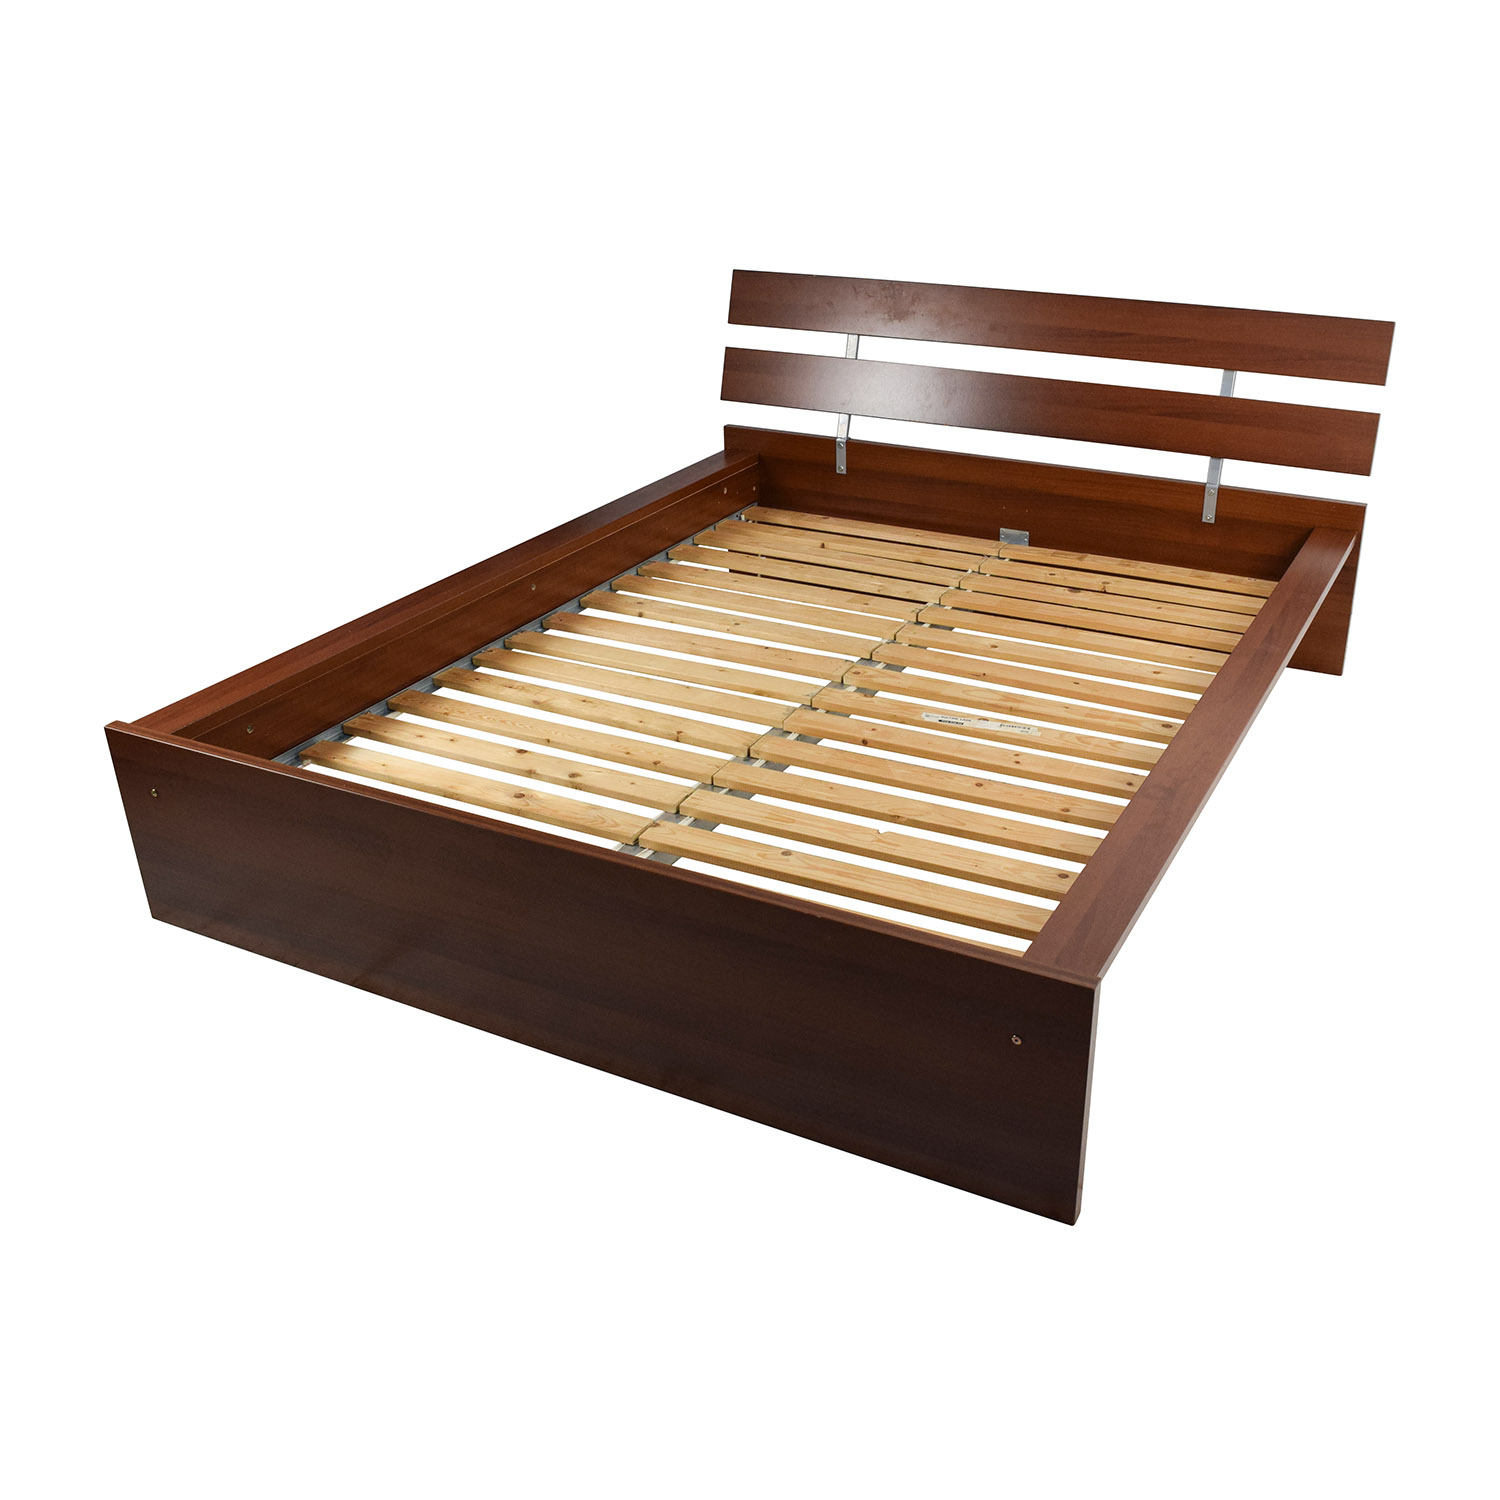 Queen Beds Online 64 Off Ikea Ikea Brown Queen Bed Frame Beds